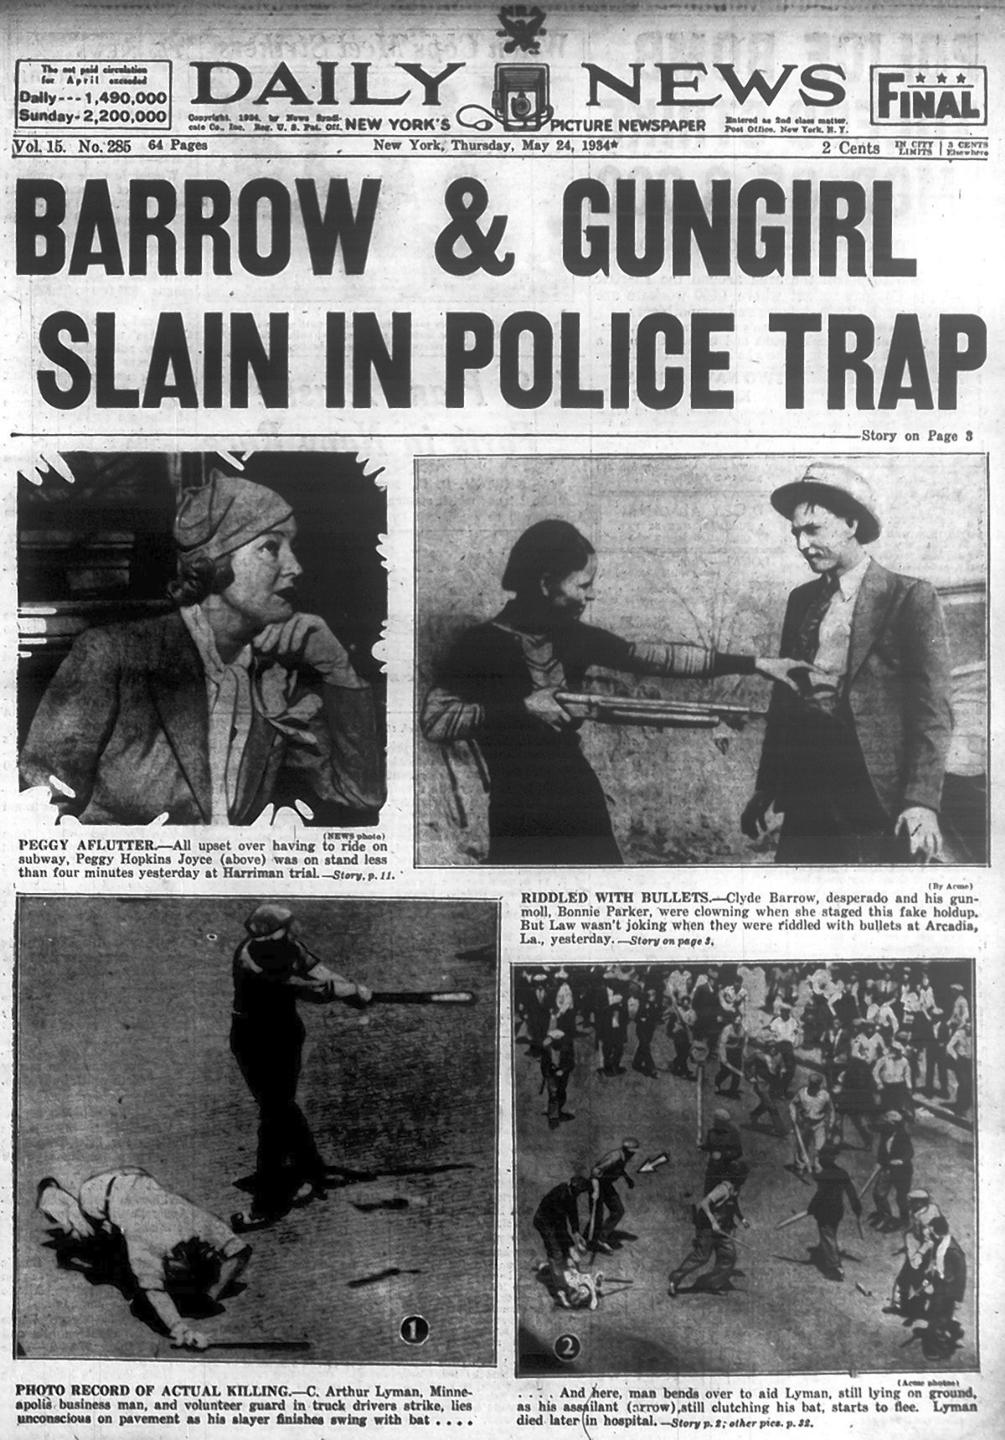 Bonnie Parker and Clyde Barrow are killed in police ambush in 1934